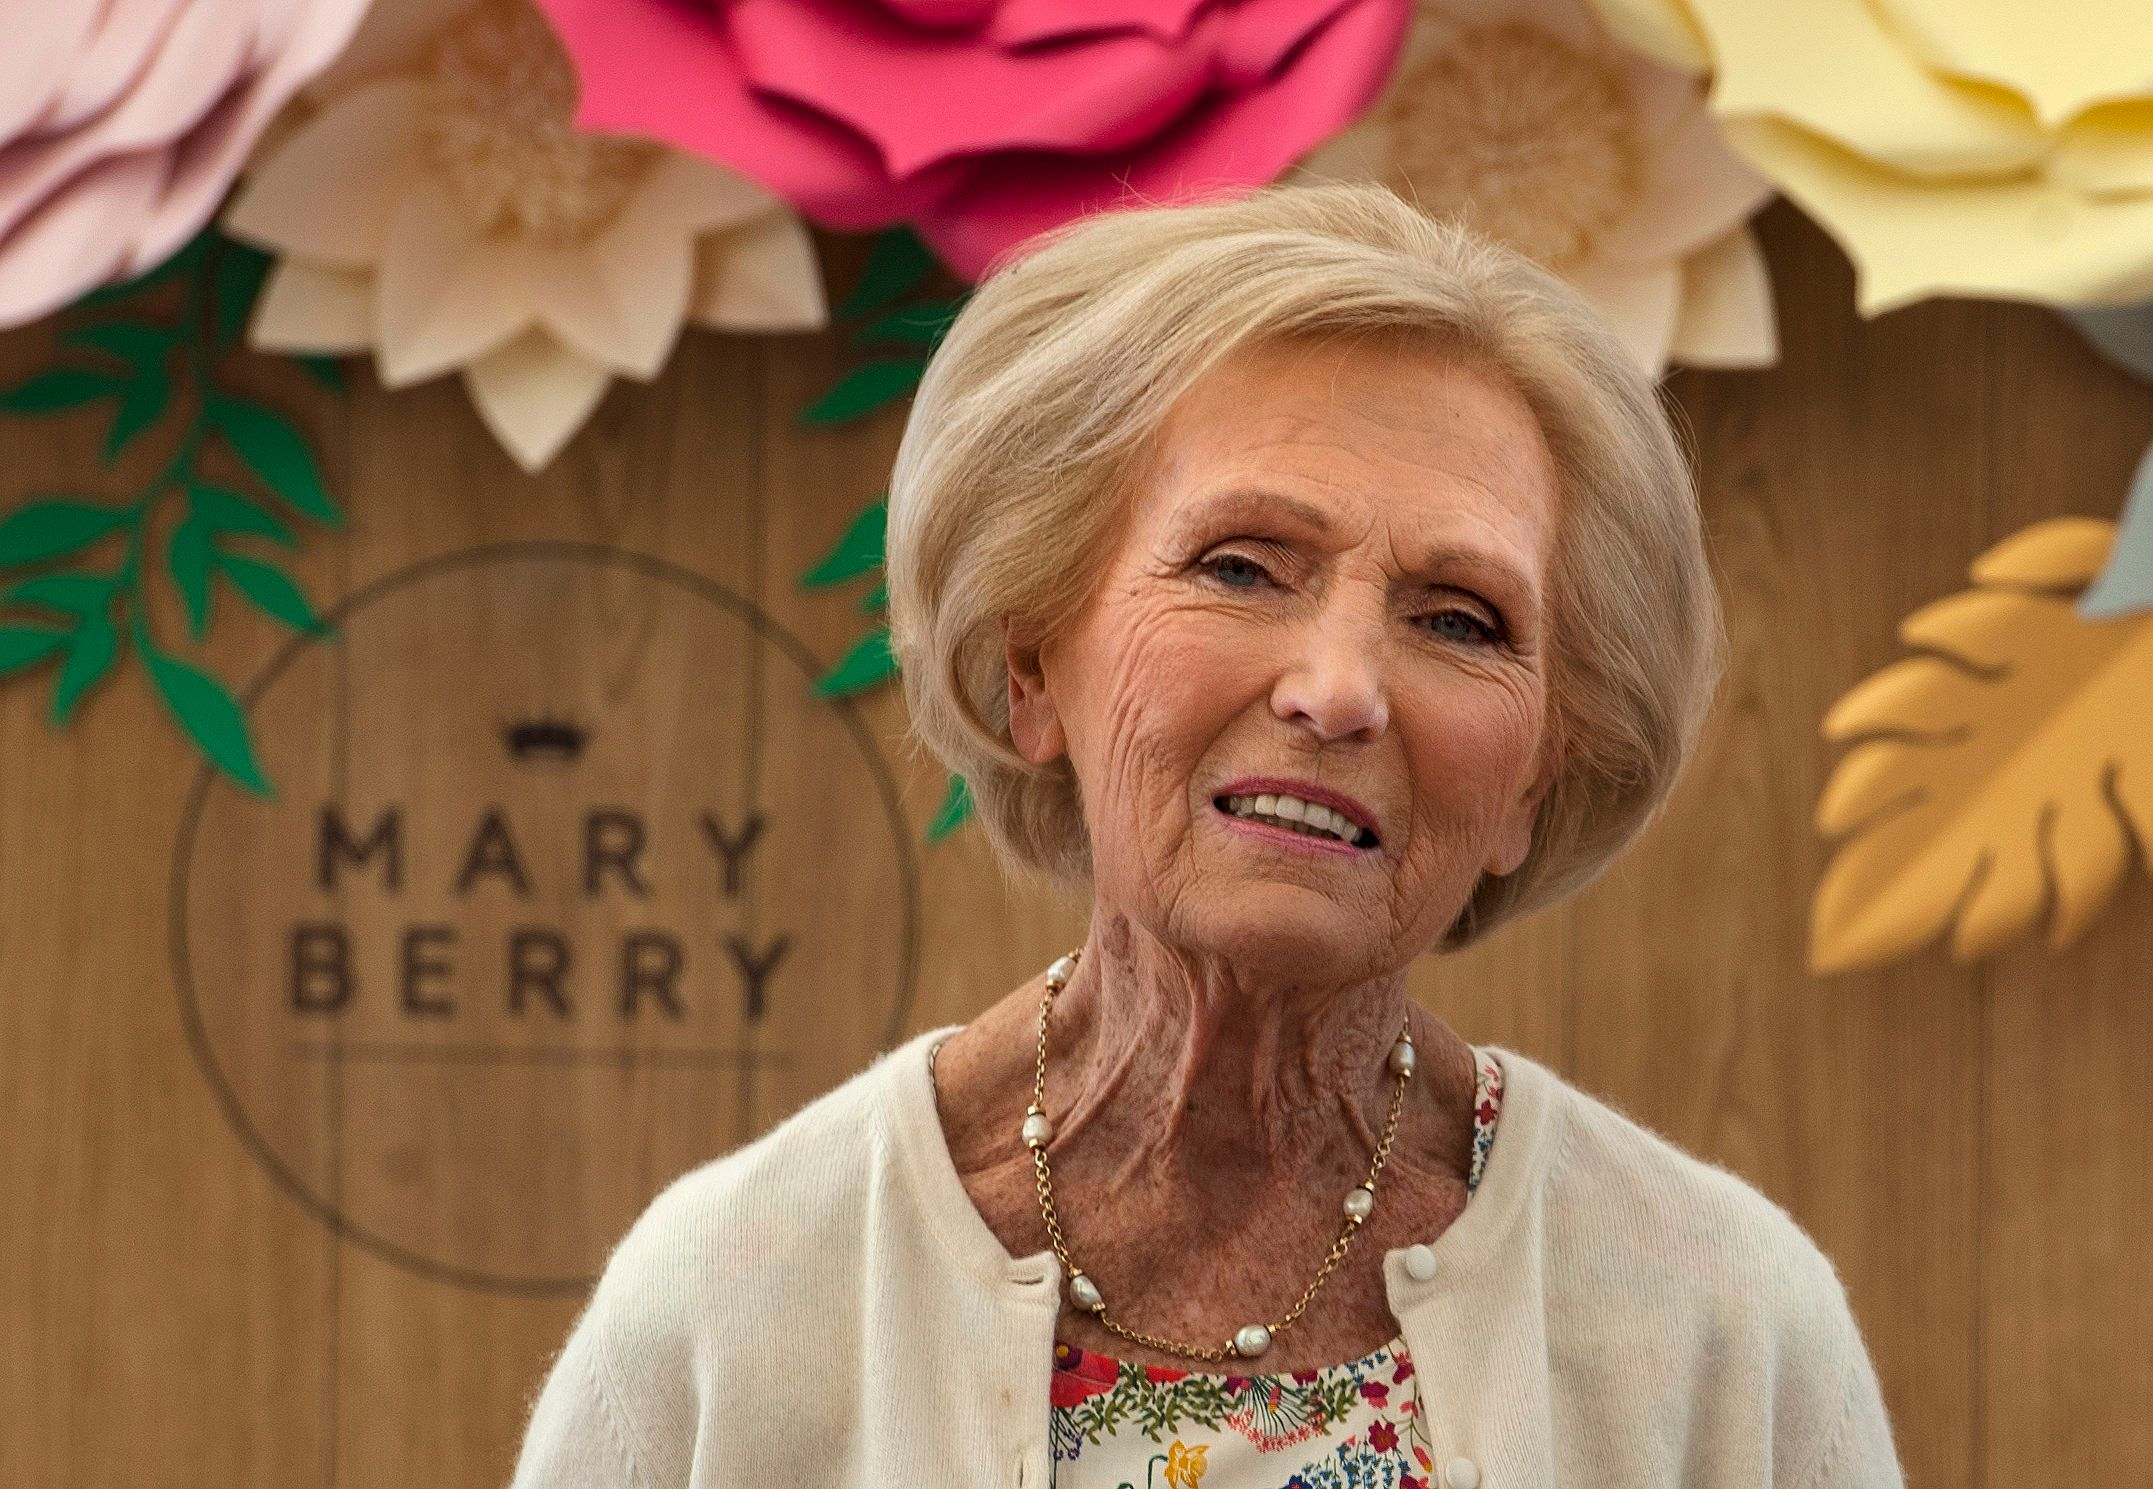 Mary Berry returns to judging role with new BBC1 cookery show